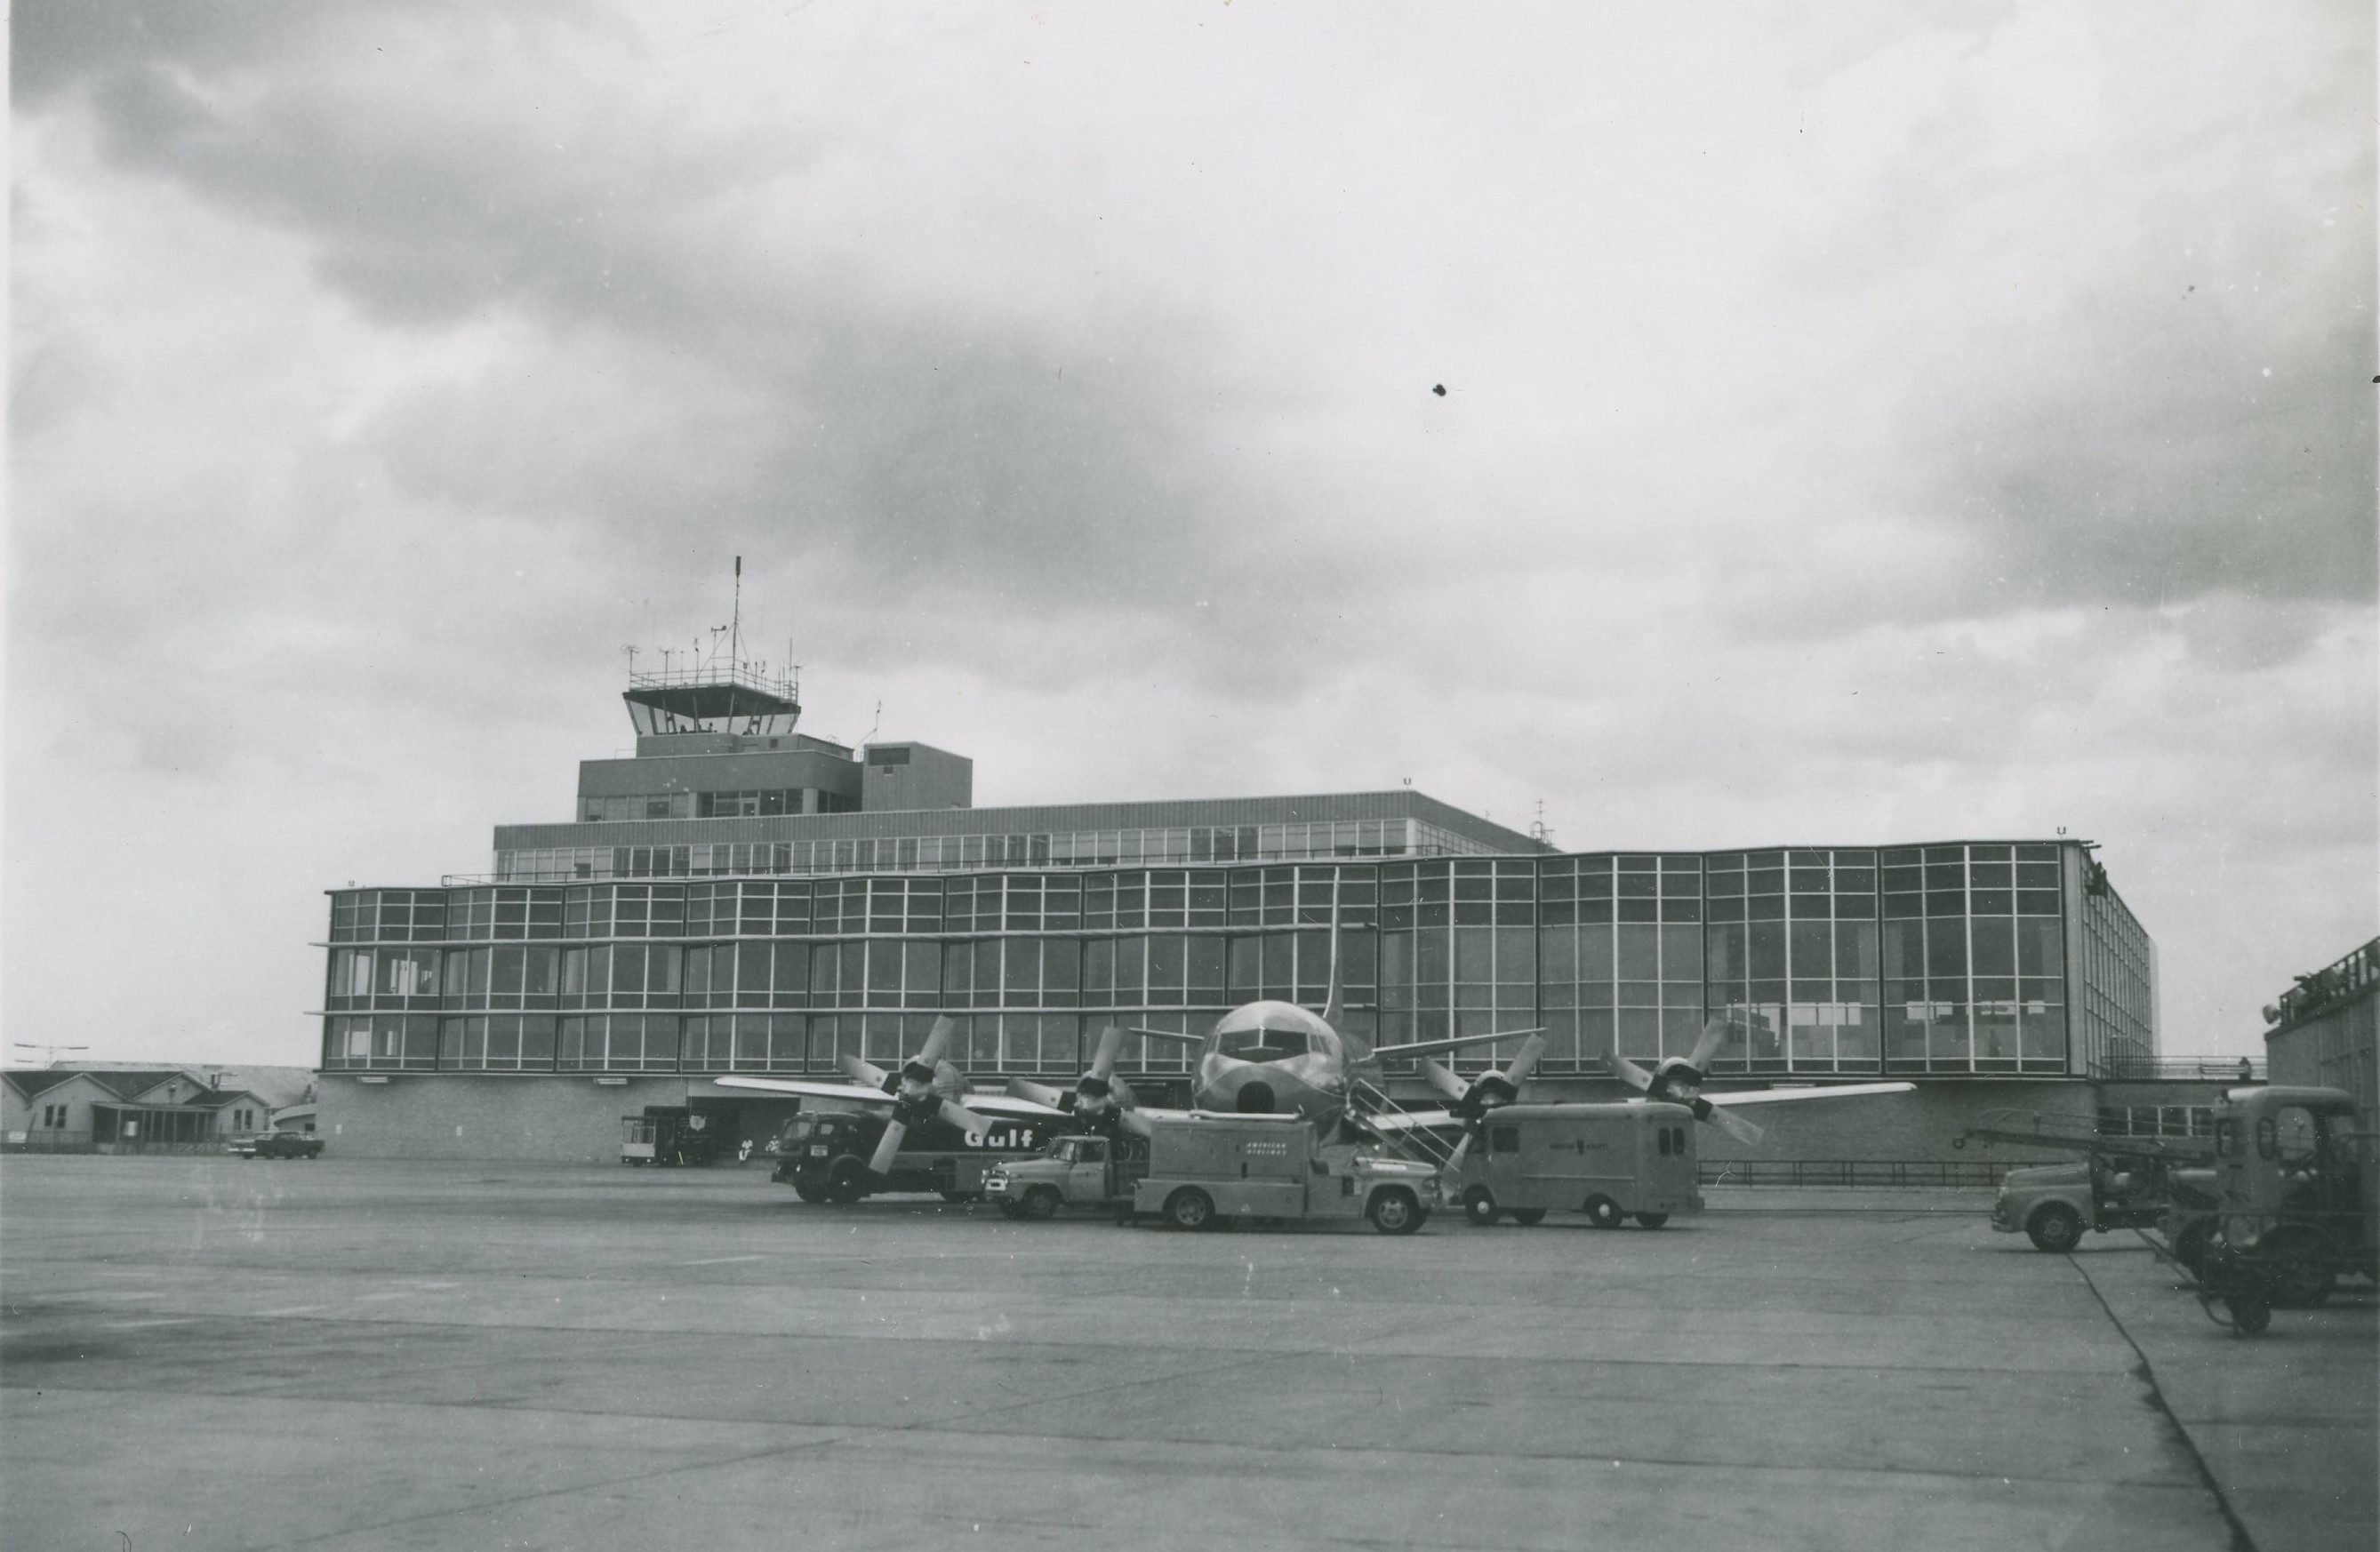 Airport History | Wayne County Airport Authority